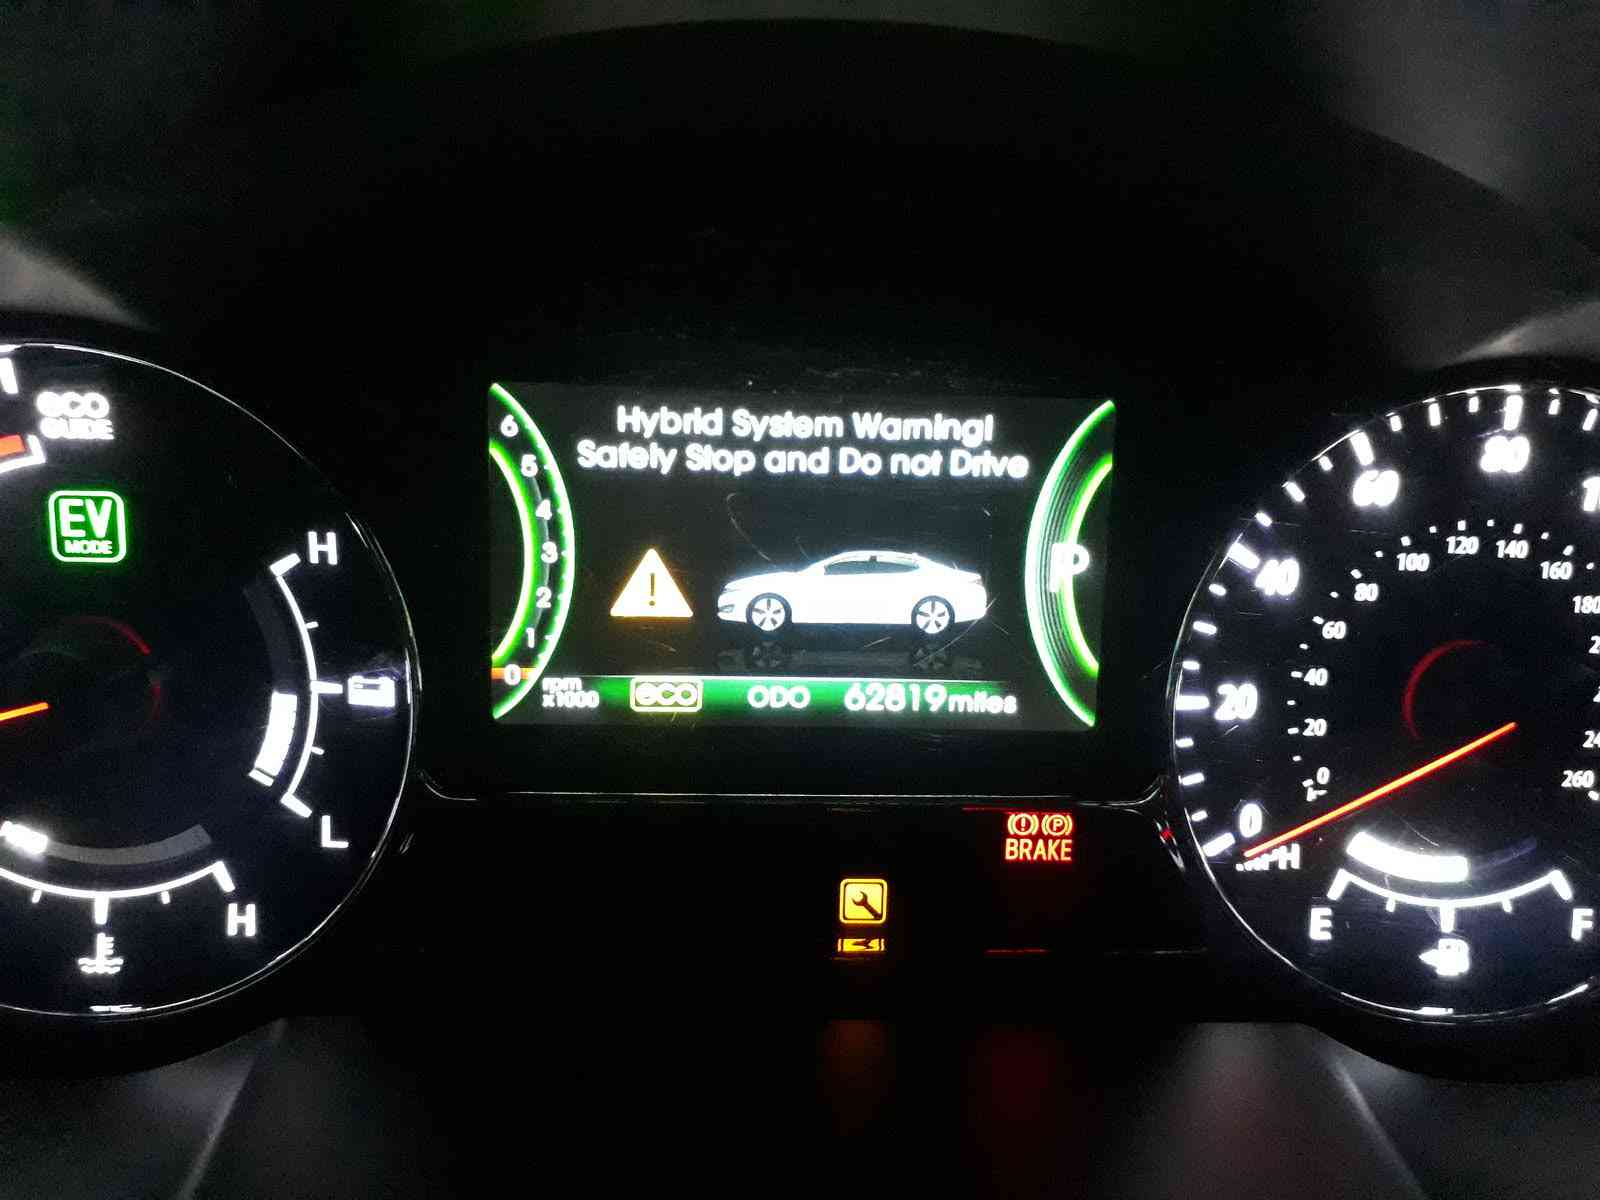 What Does The Hybrid System Warning Light Mean